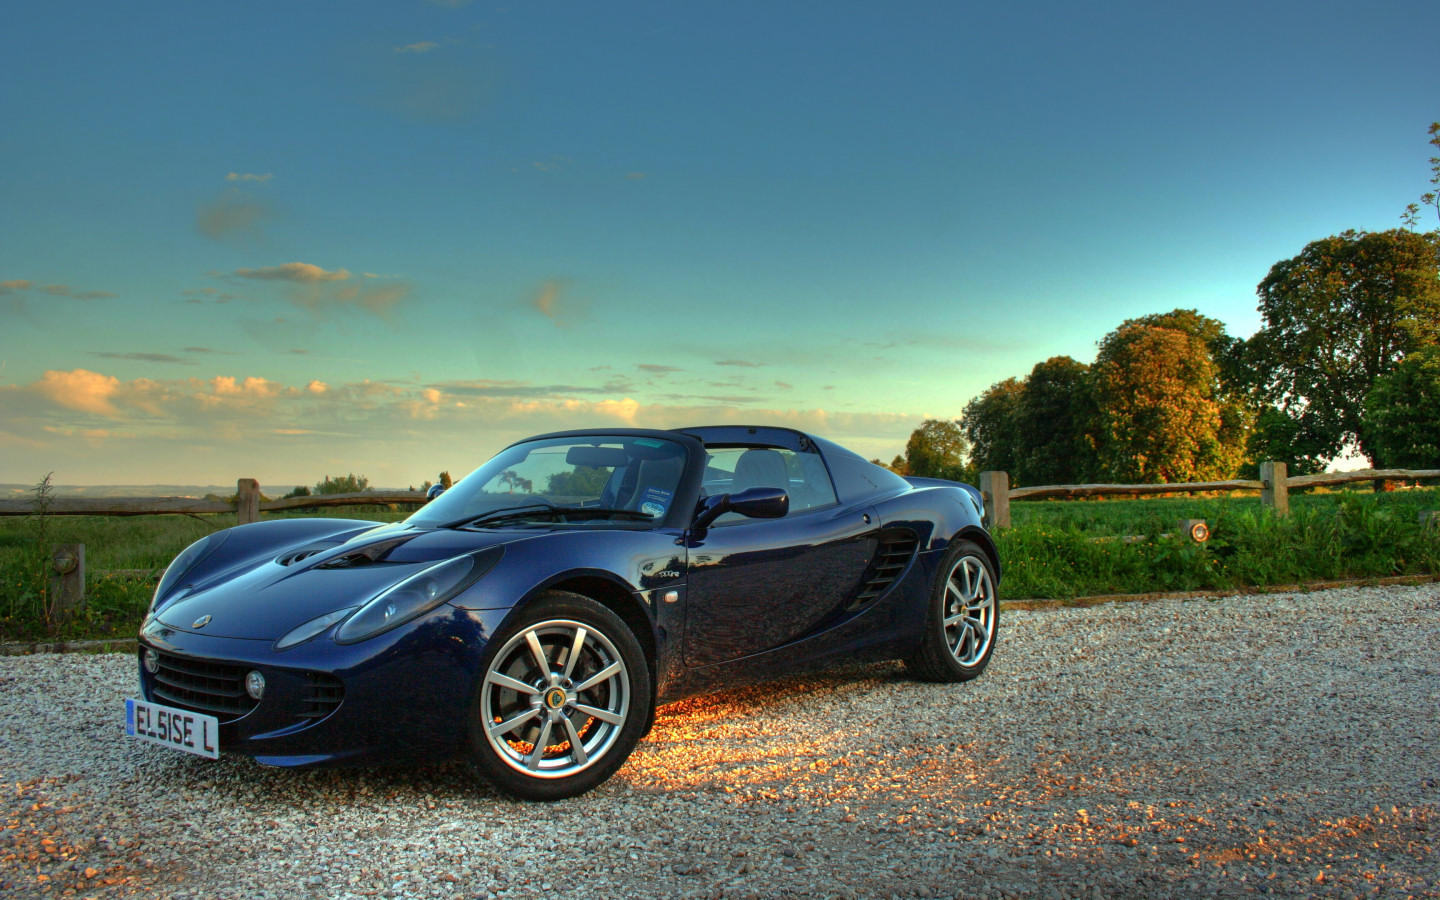 Car Wallpaper Hd Download For Mobile Lotus Elise 111r Wallpaper 1 By Waterrat On Deviantart